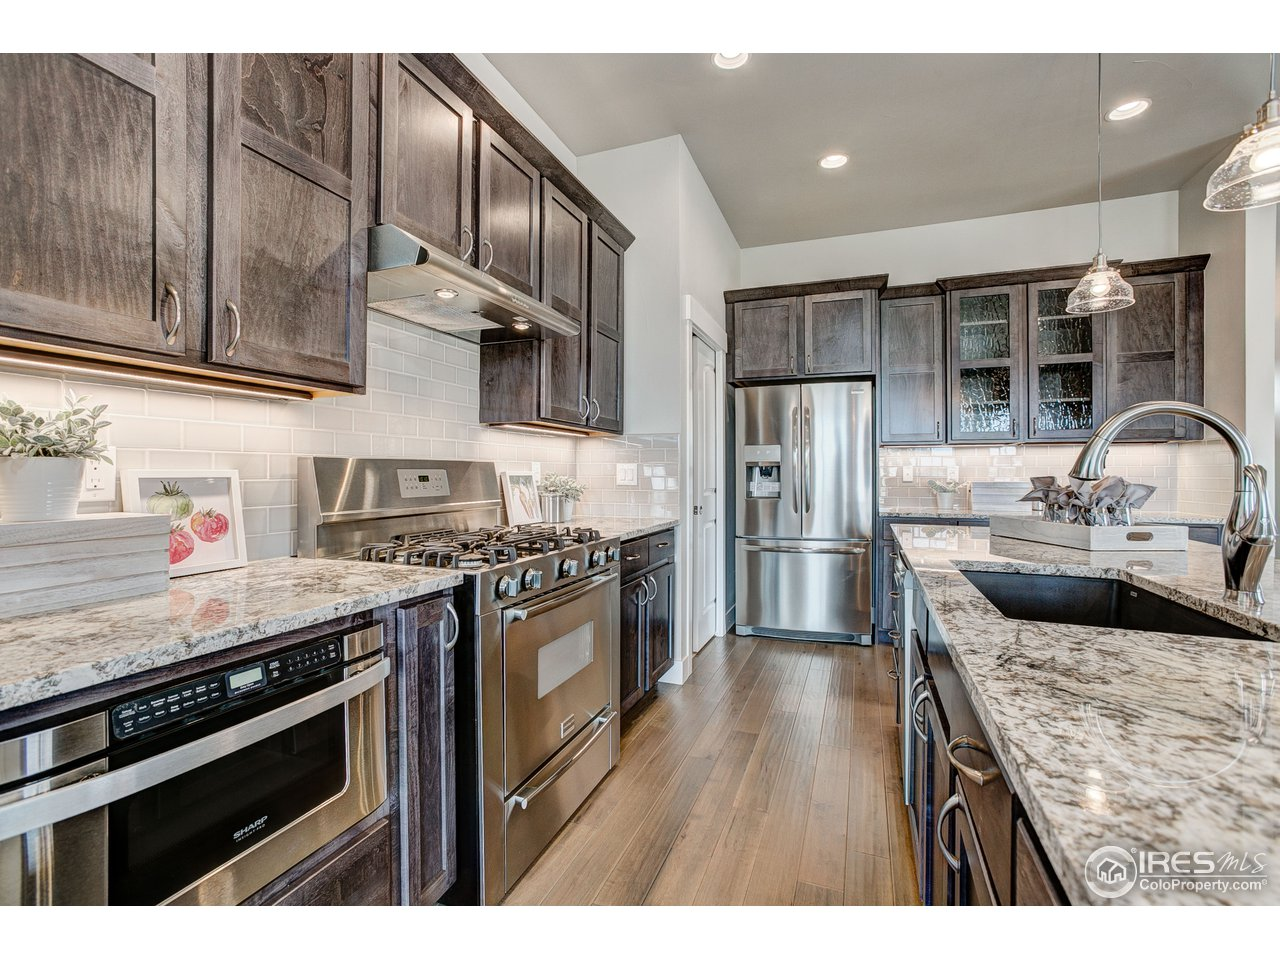 Upgraded appliances for a gourmet kitchen